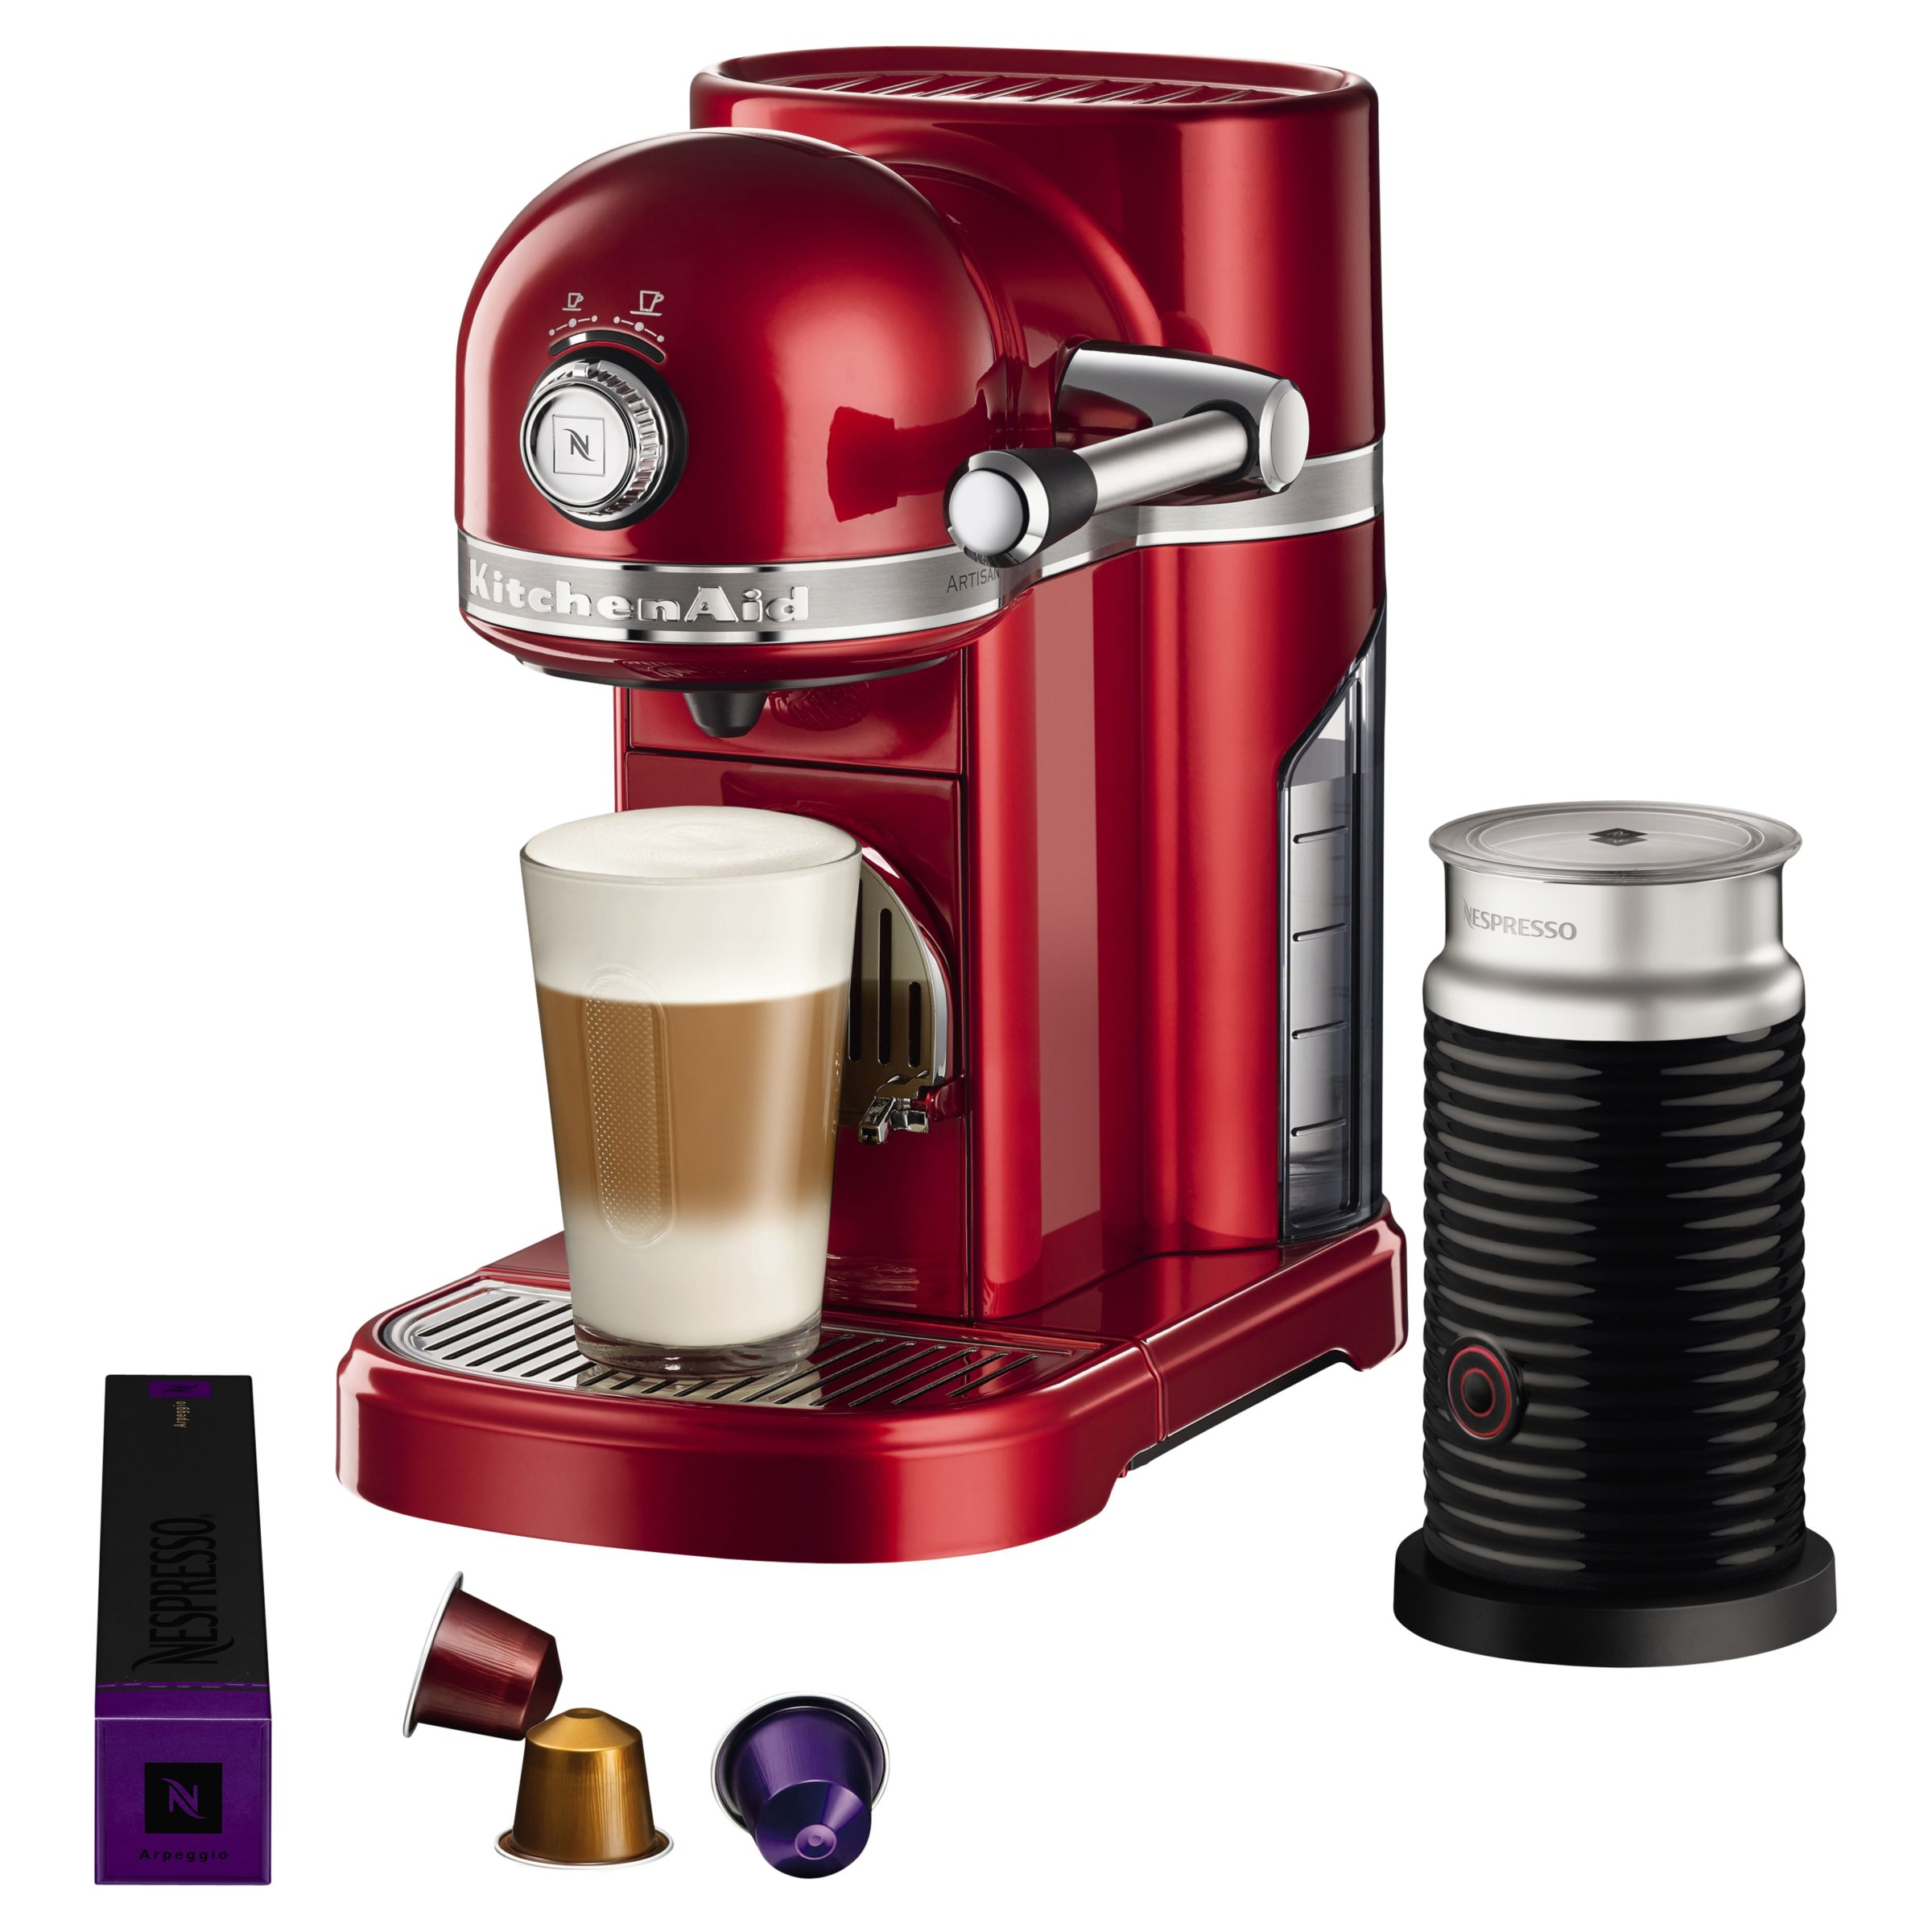 Italian Coffee Maker John Lewis : Buy Nespresso Artisan Coffee Machine with Aeroccino by KitchenAid John Lewis